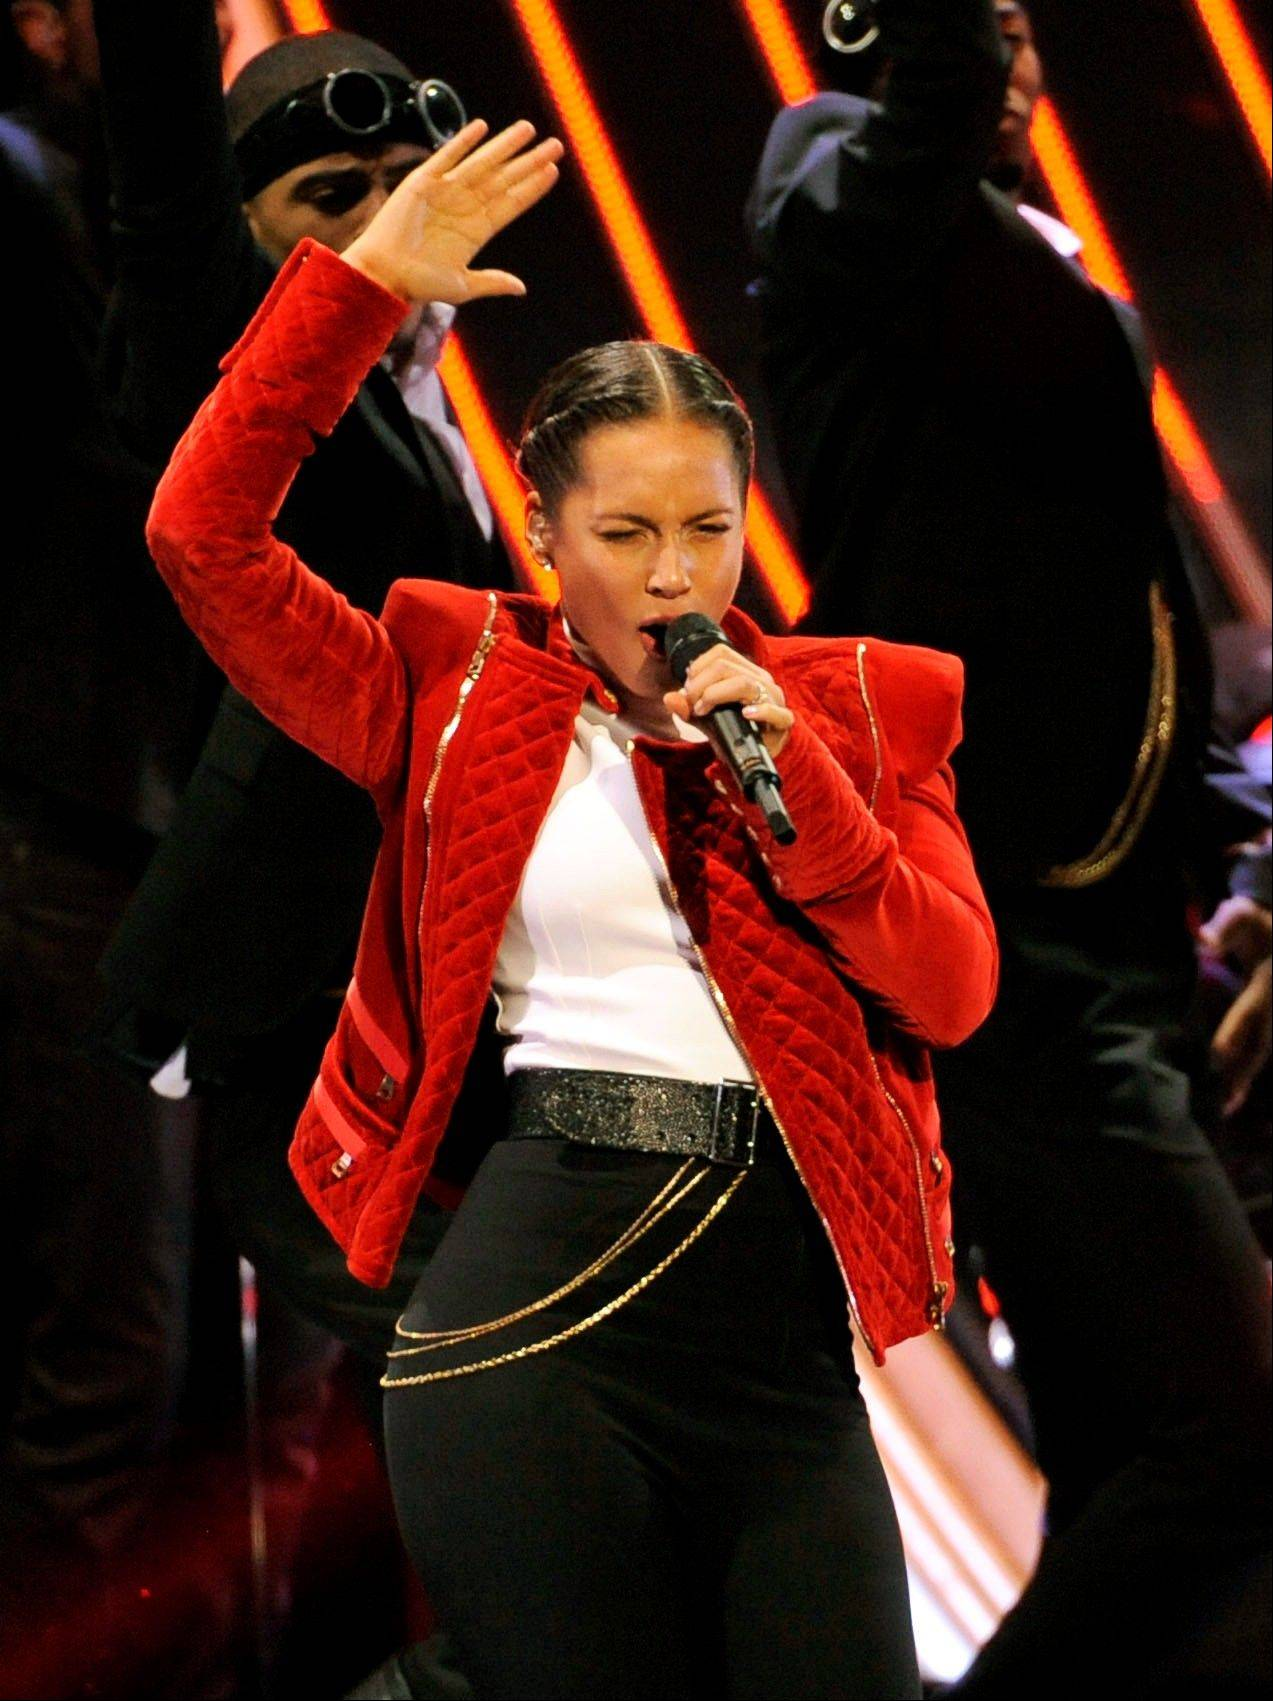 Alicia Keys performs at the People's Choice Awards at the Nokia Theatre on Wednesday Jan. 9, 2013, in Los Angeles.